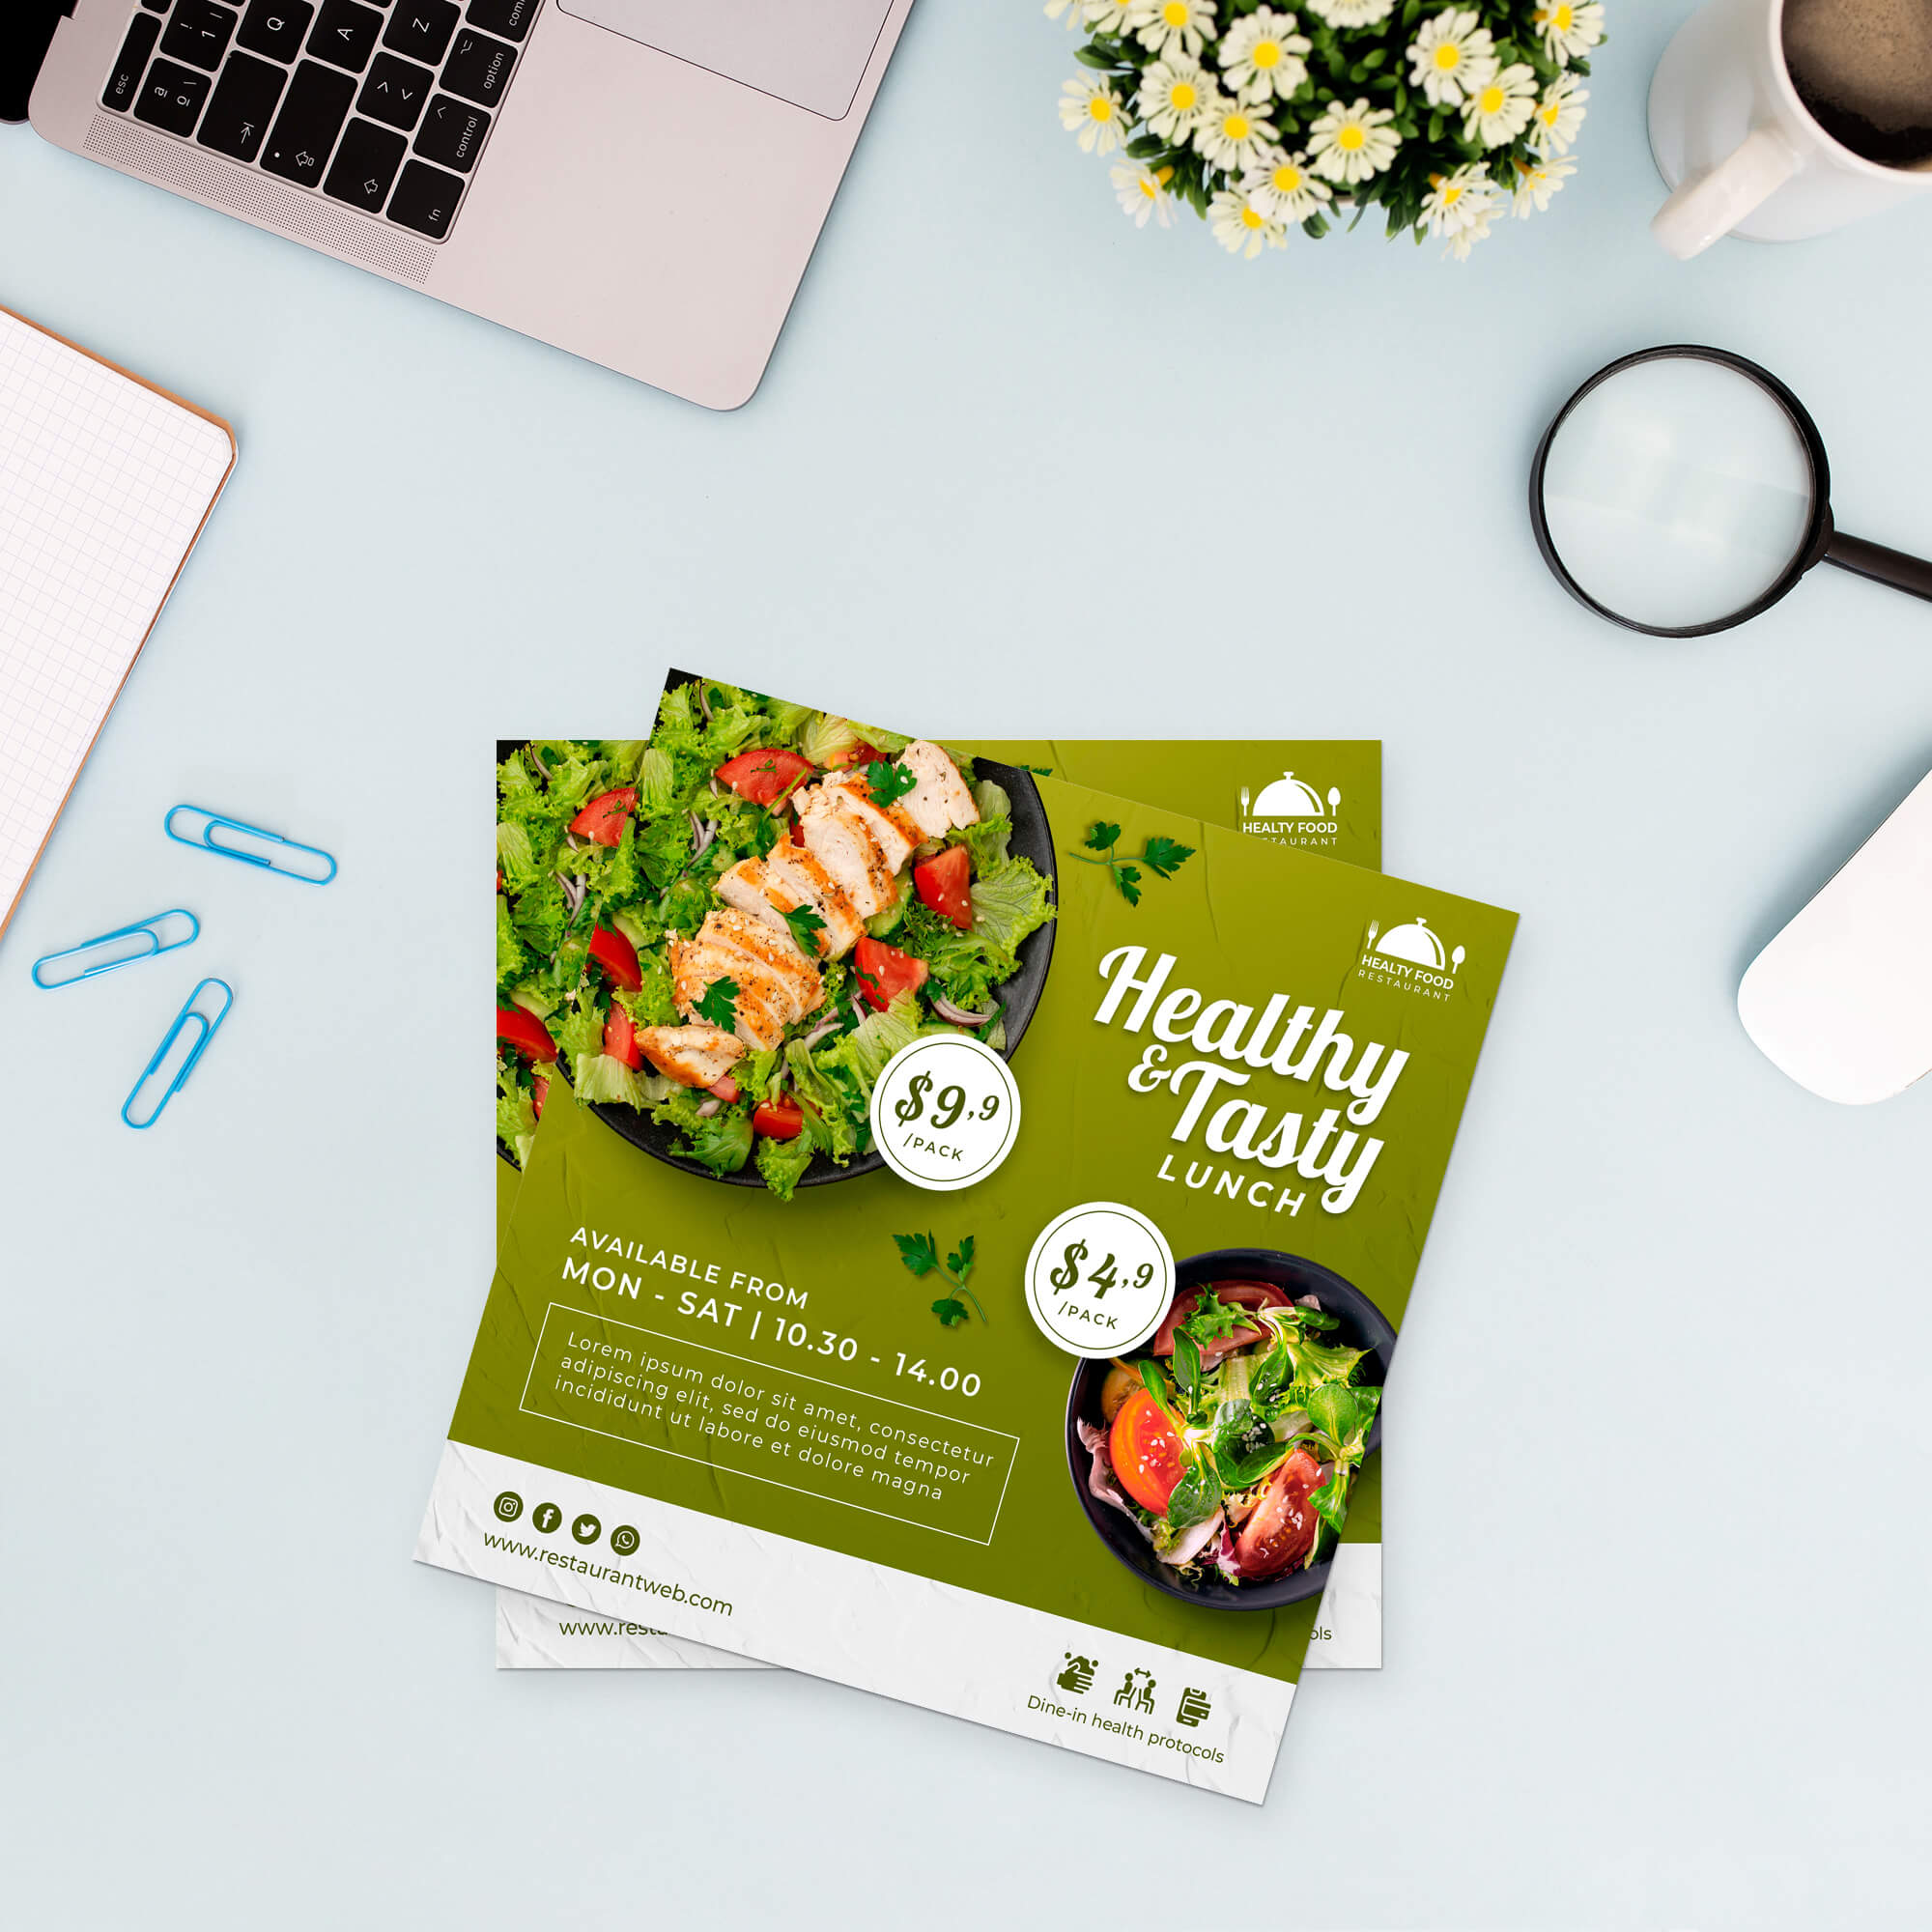 Free Square Paper Mockup PSD Template